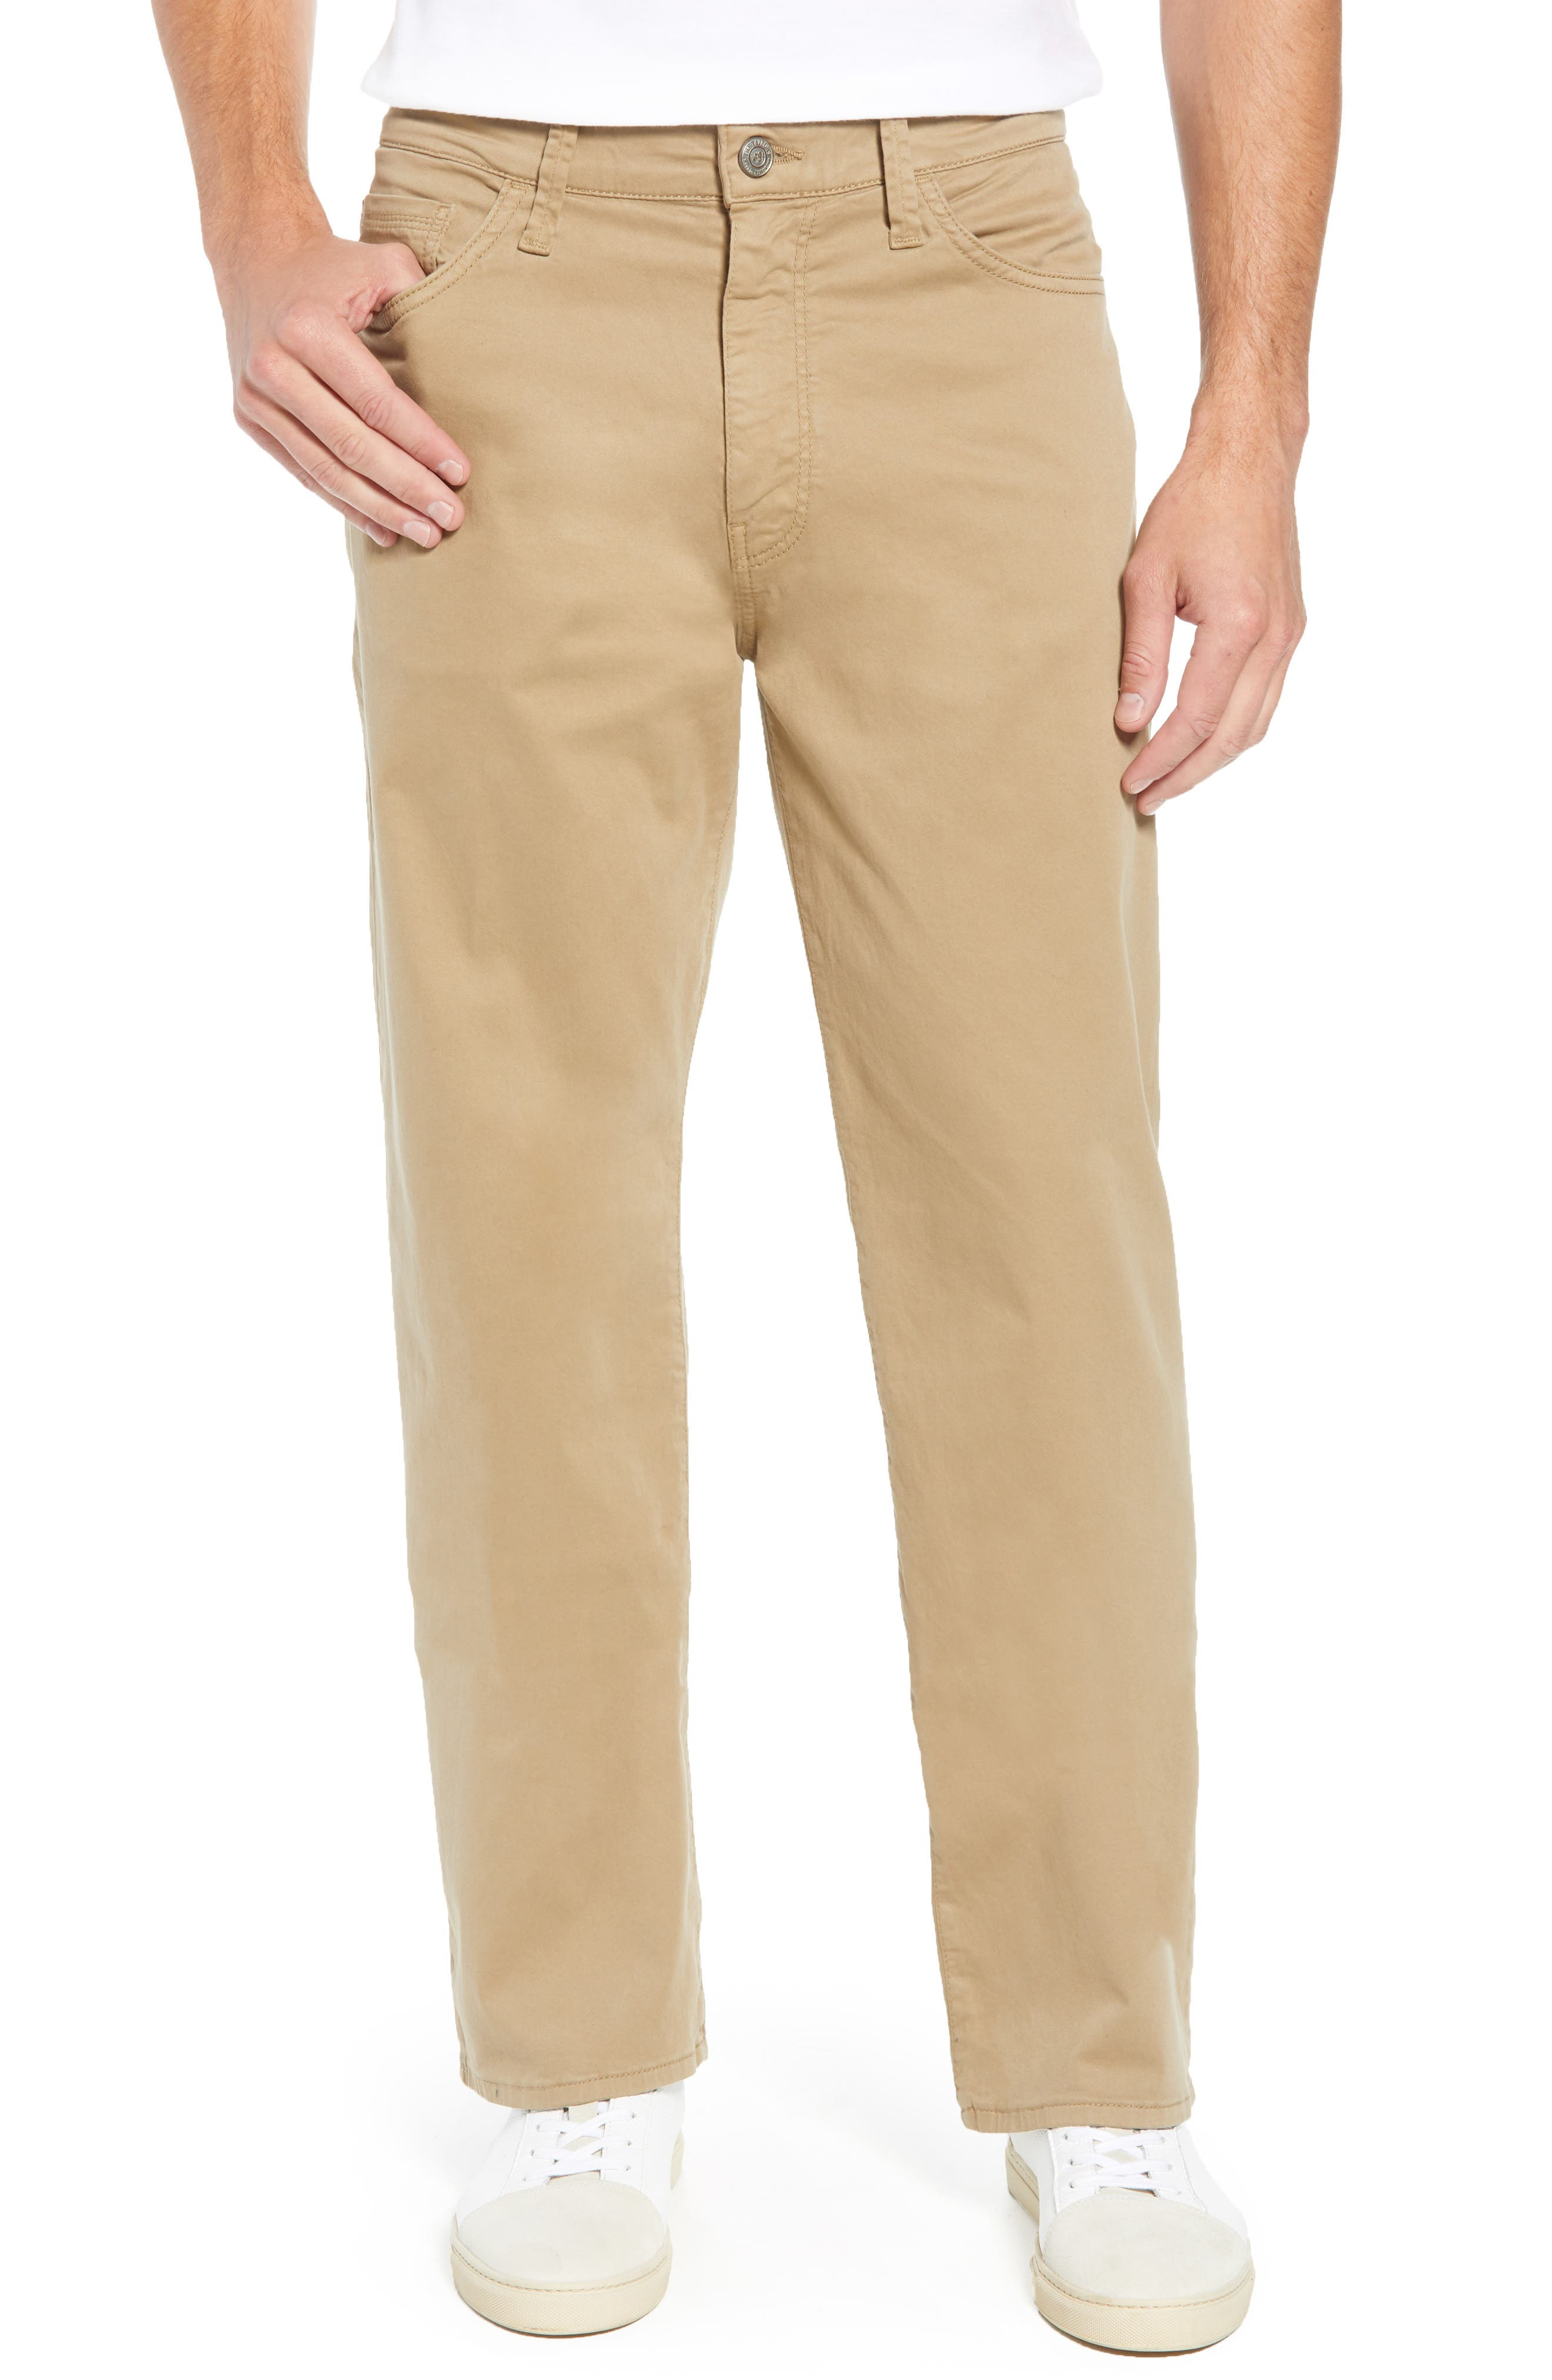 Men's Mavi Jeans Max Relaxed Fit Twill Pants